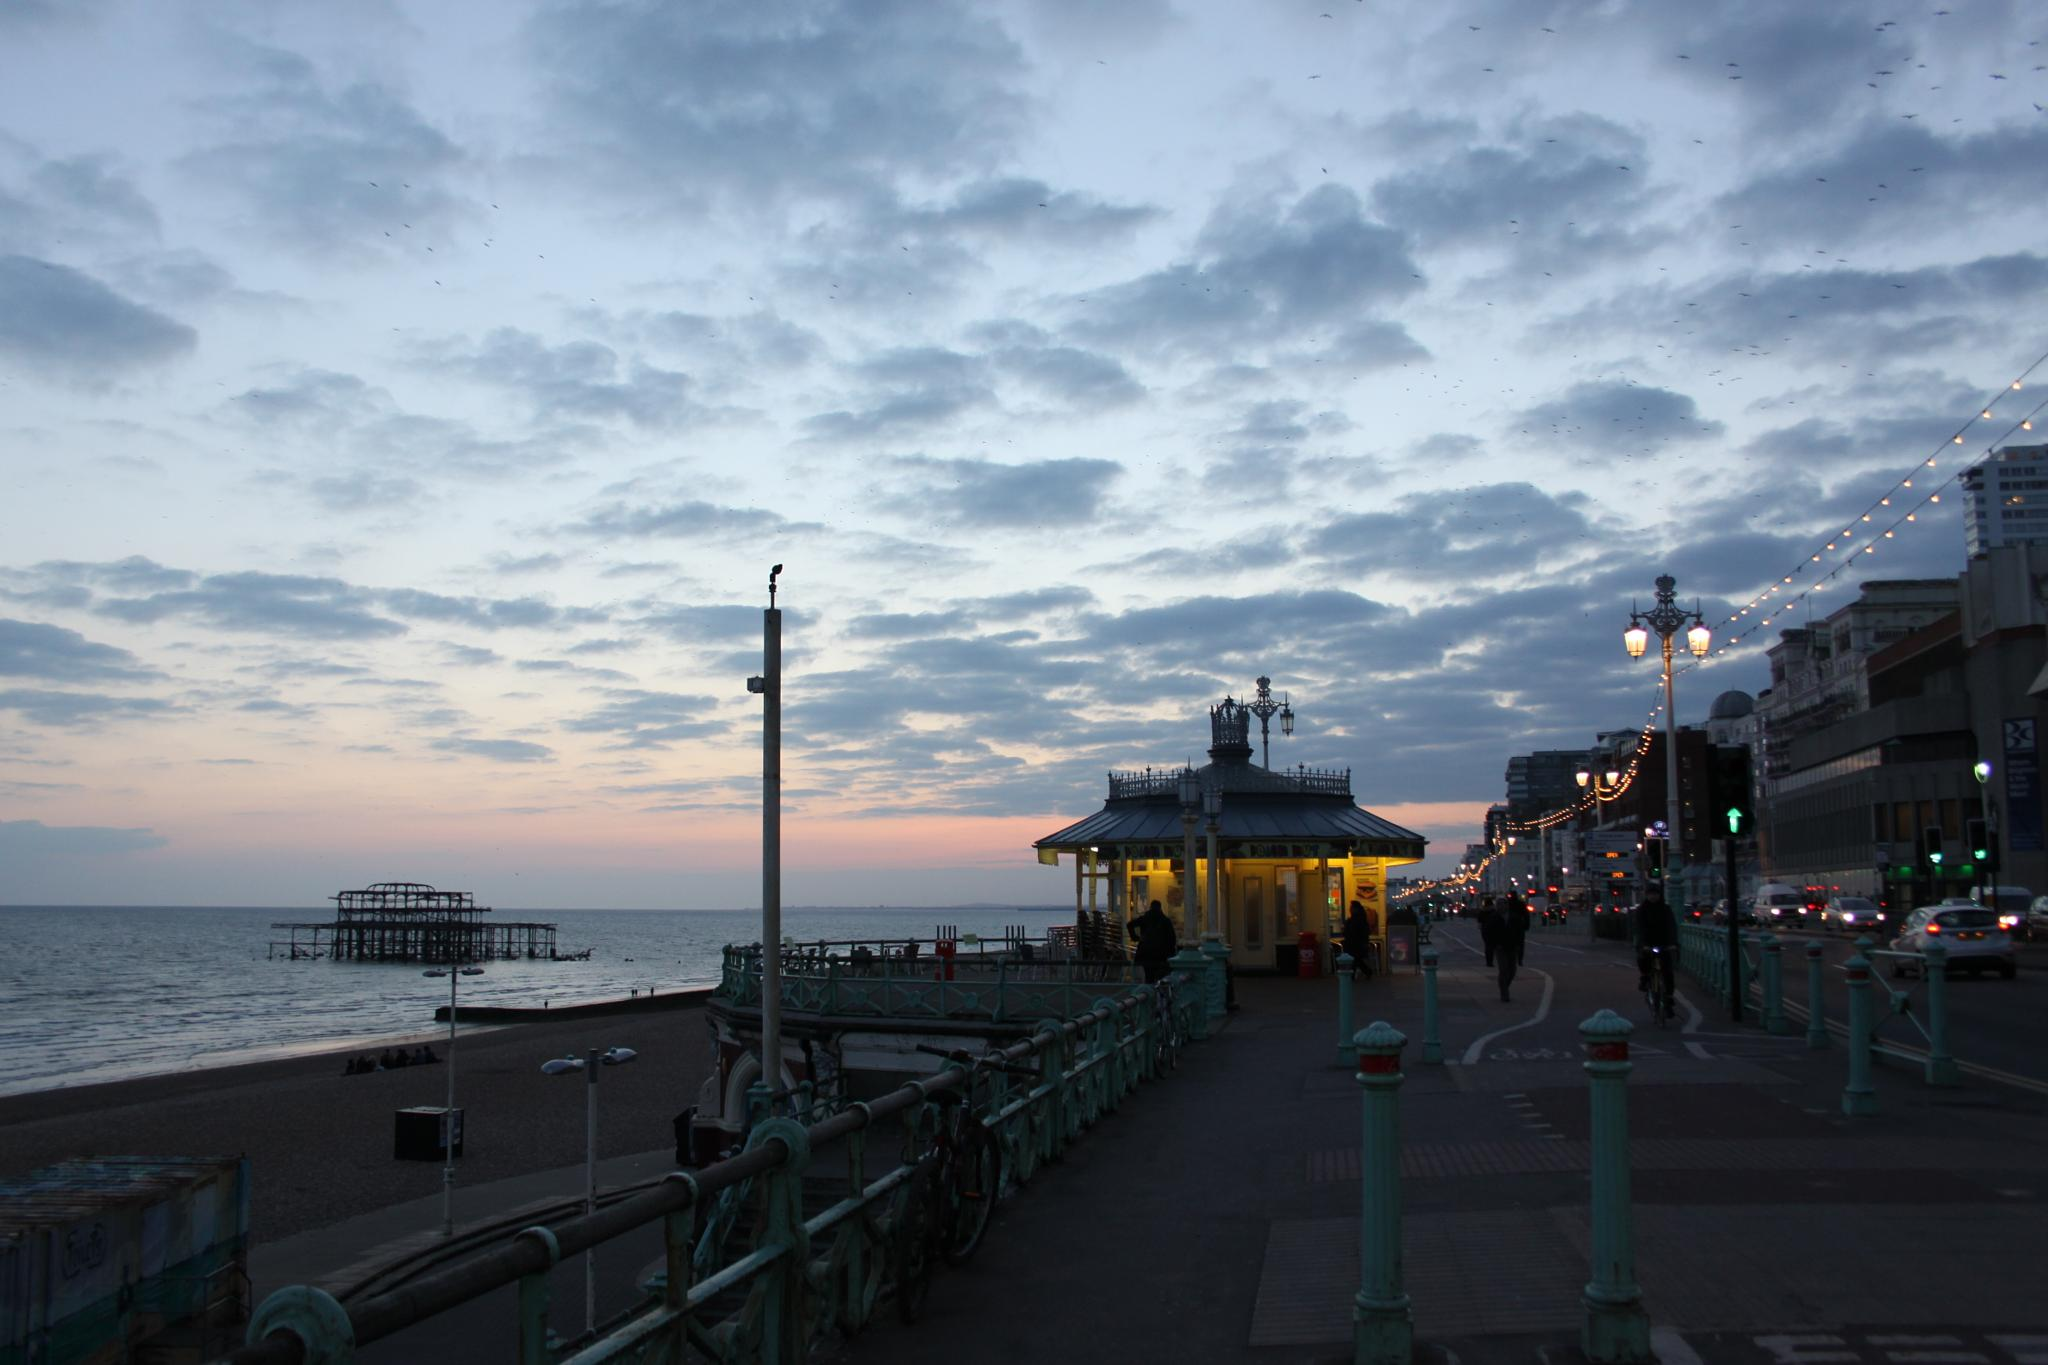 evening colors over Brighton by Micala Zita